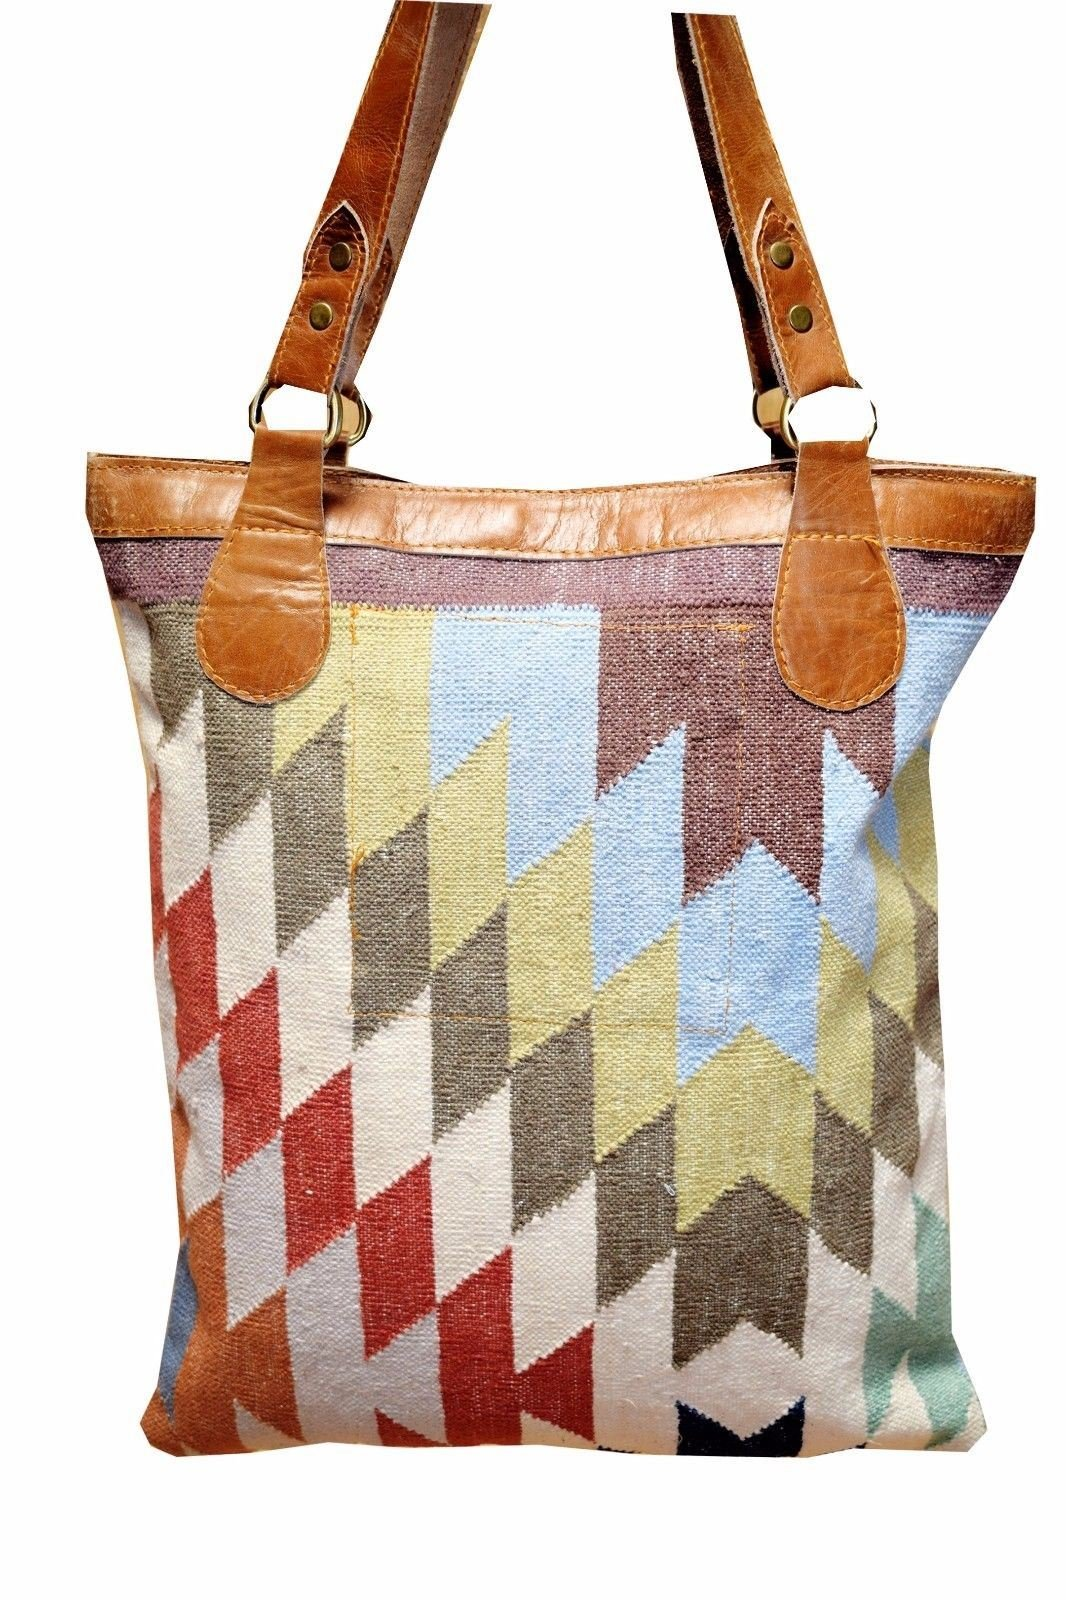 New Womens Indian Embroidery Traditional Handmade Mirror Work Hand Bag Vintage Tote Bags